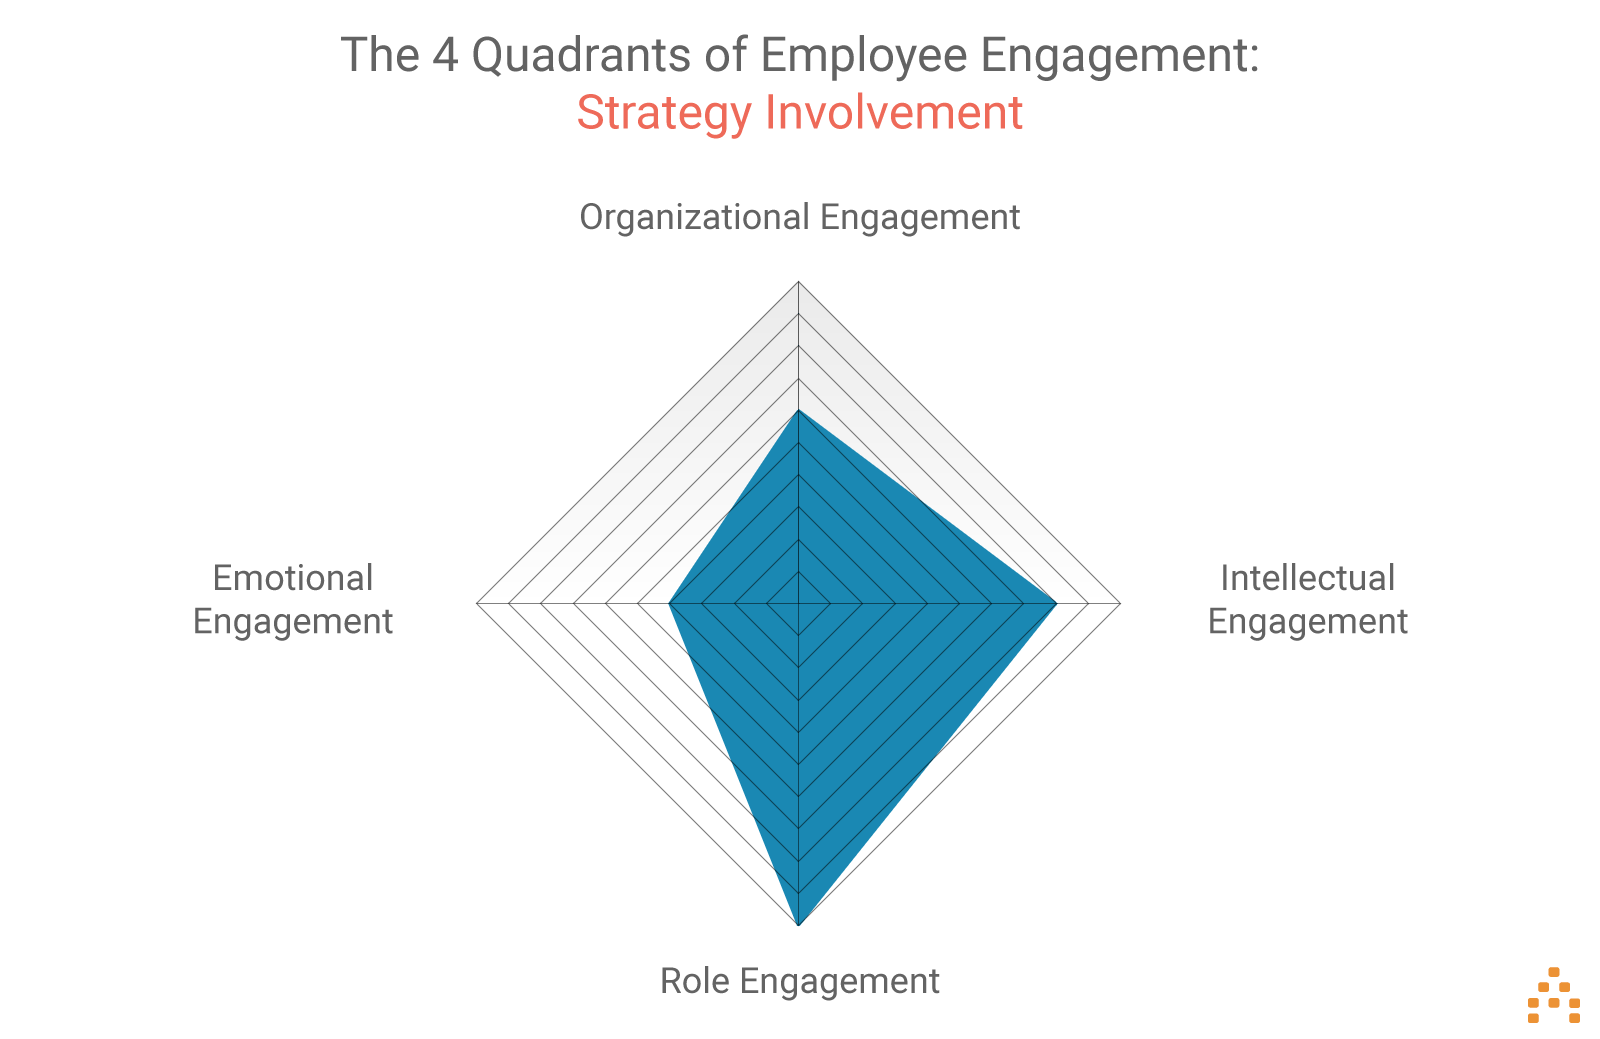 employee-engagement-strategy-involvement